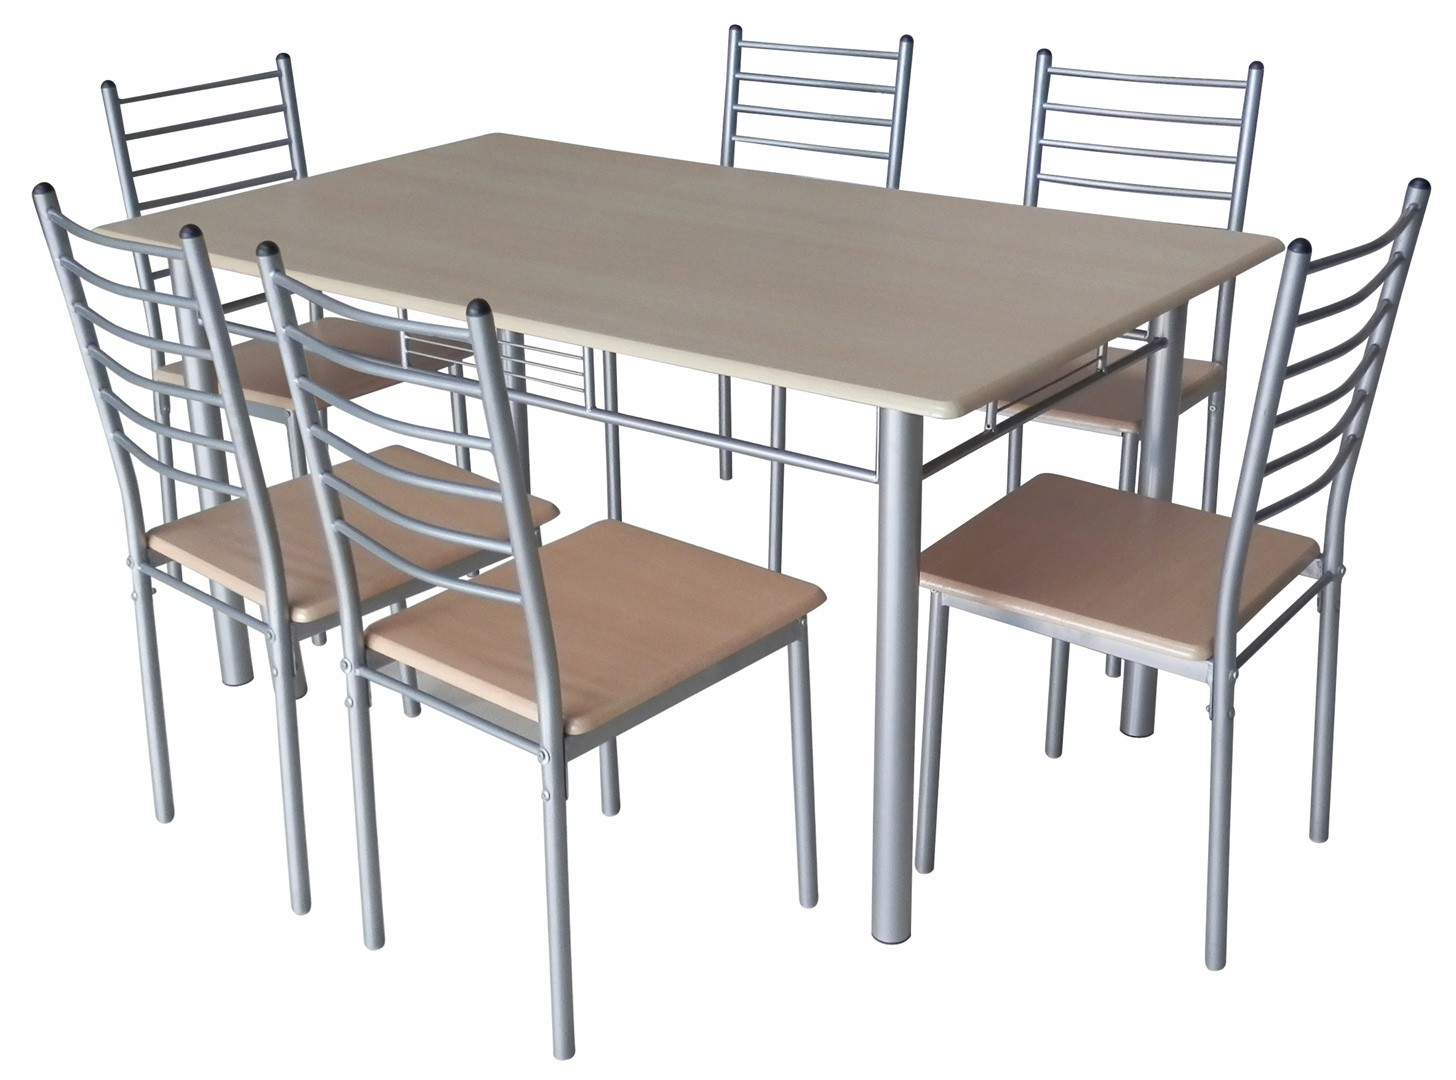 Ensemble table et chaises de cuisine but chaise id es for Table ronde et chaises